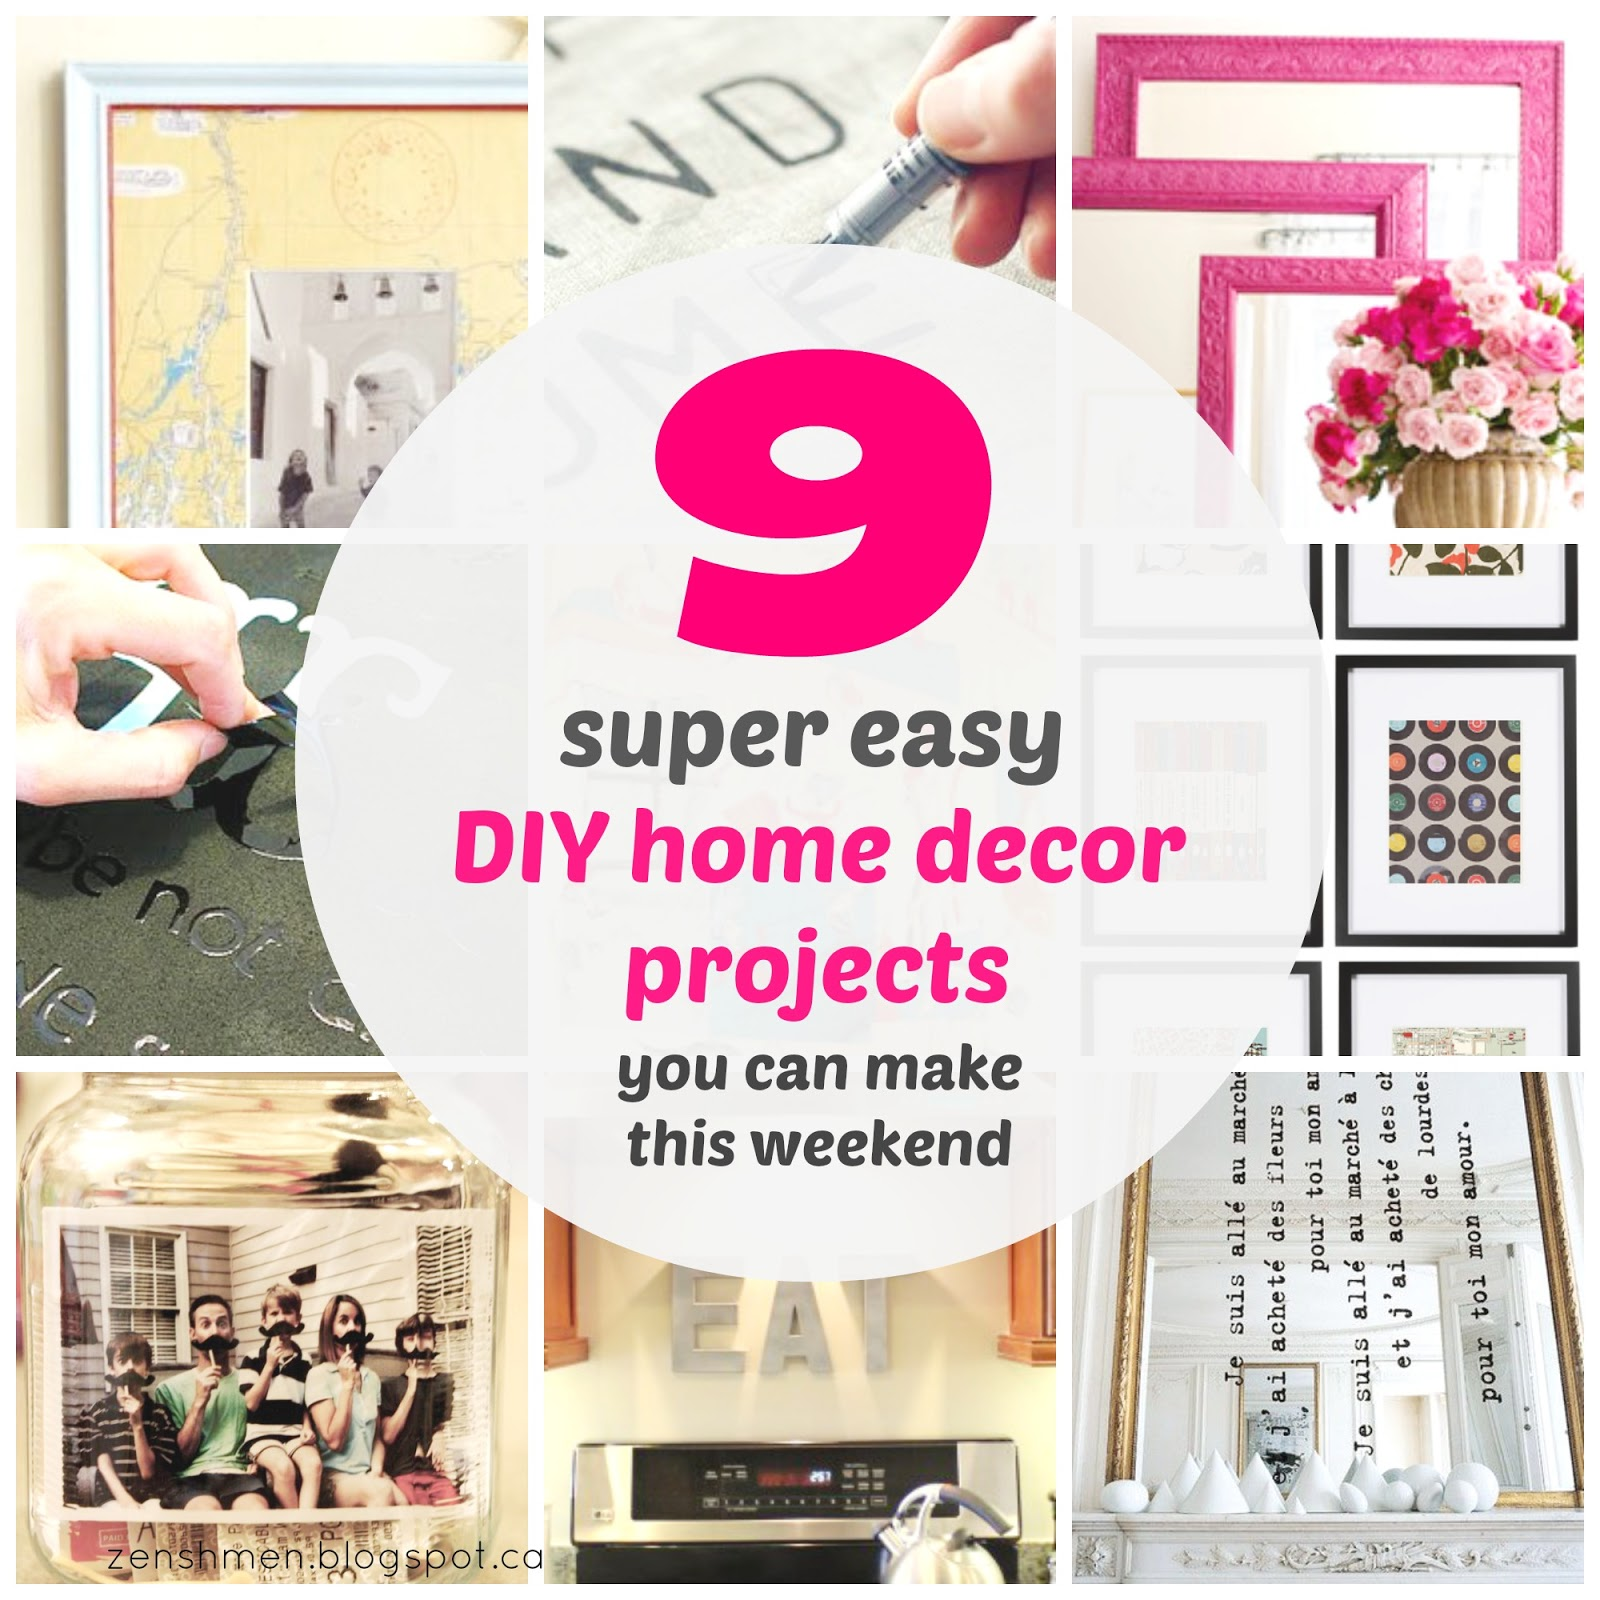 Zen shmen 9 super easy diy home decor projects you can for Easy home improvement projects